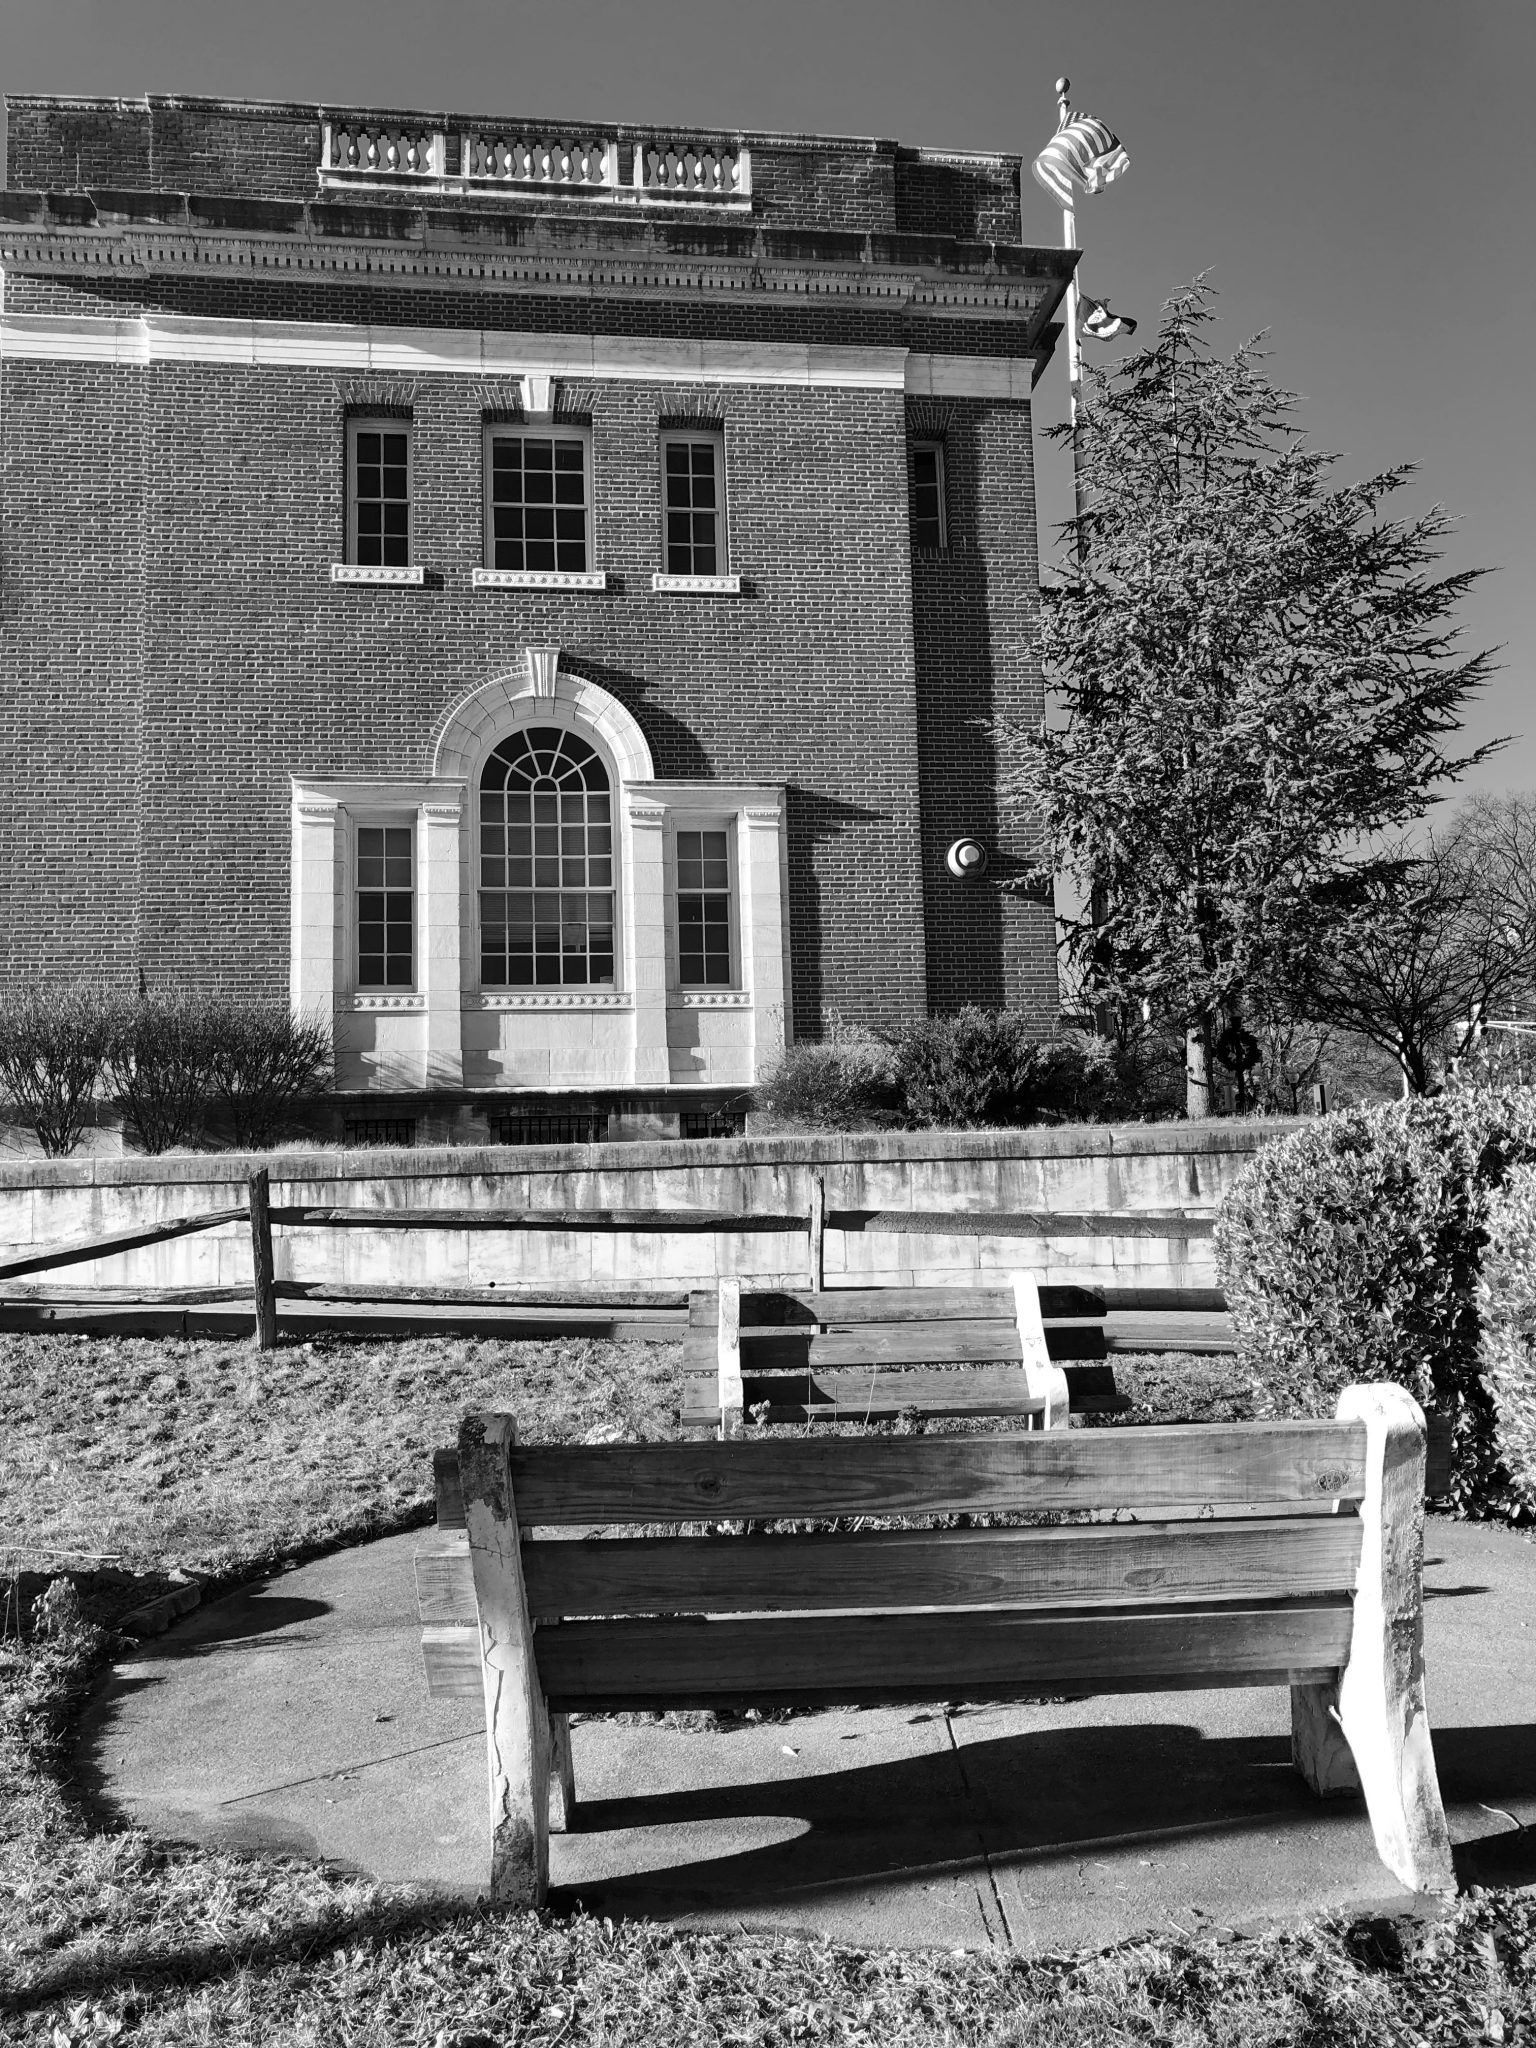 Black and white image of Post Office building in Morristown, NJ with bench outside